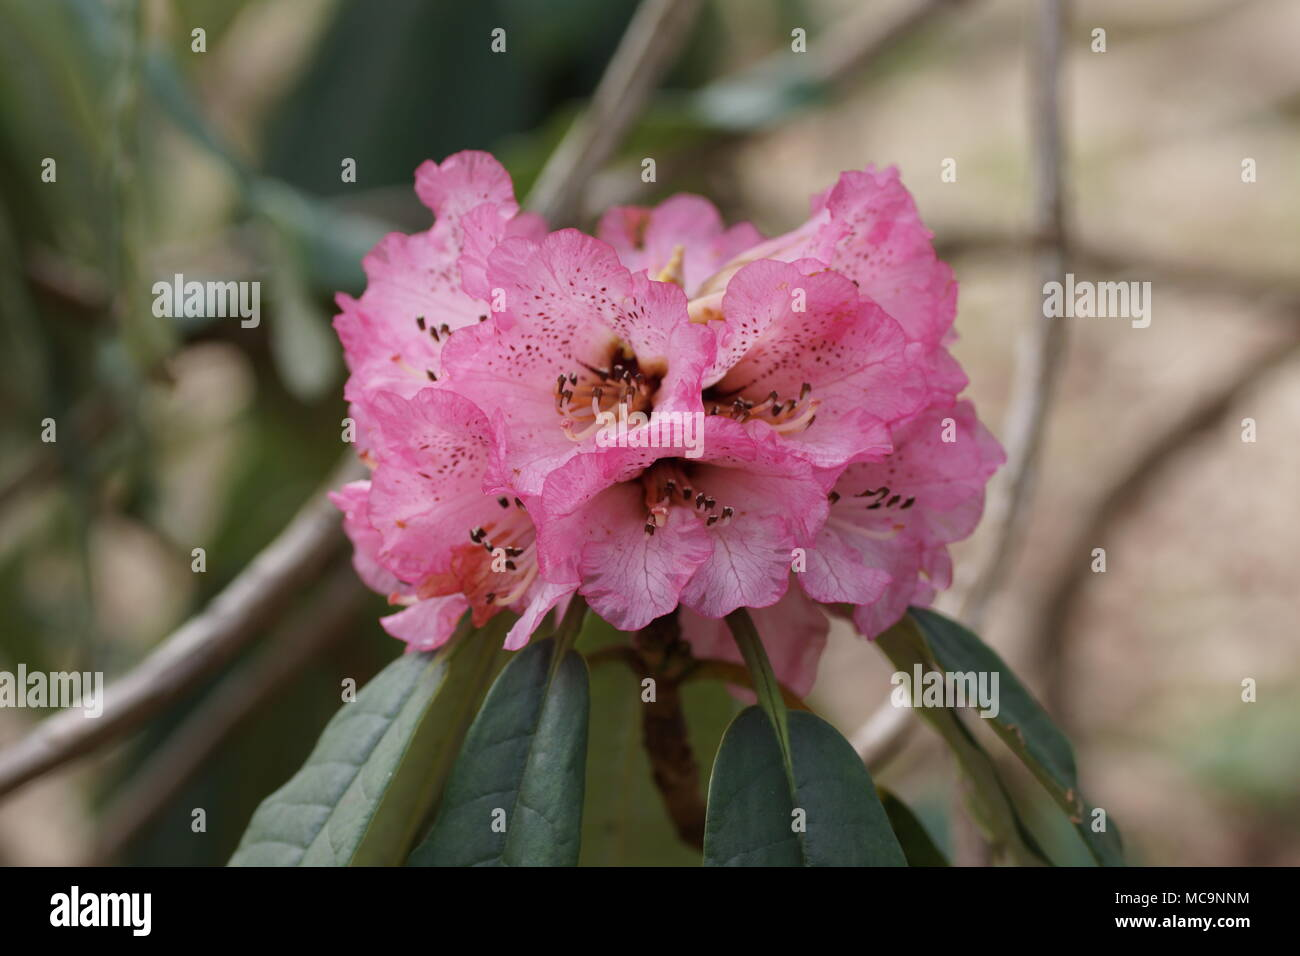 Flowers of  Rhododendron arboreum - Stock Image